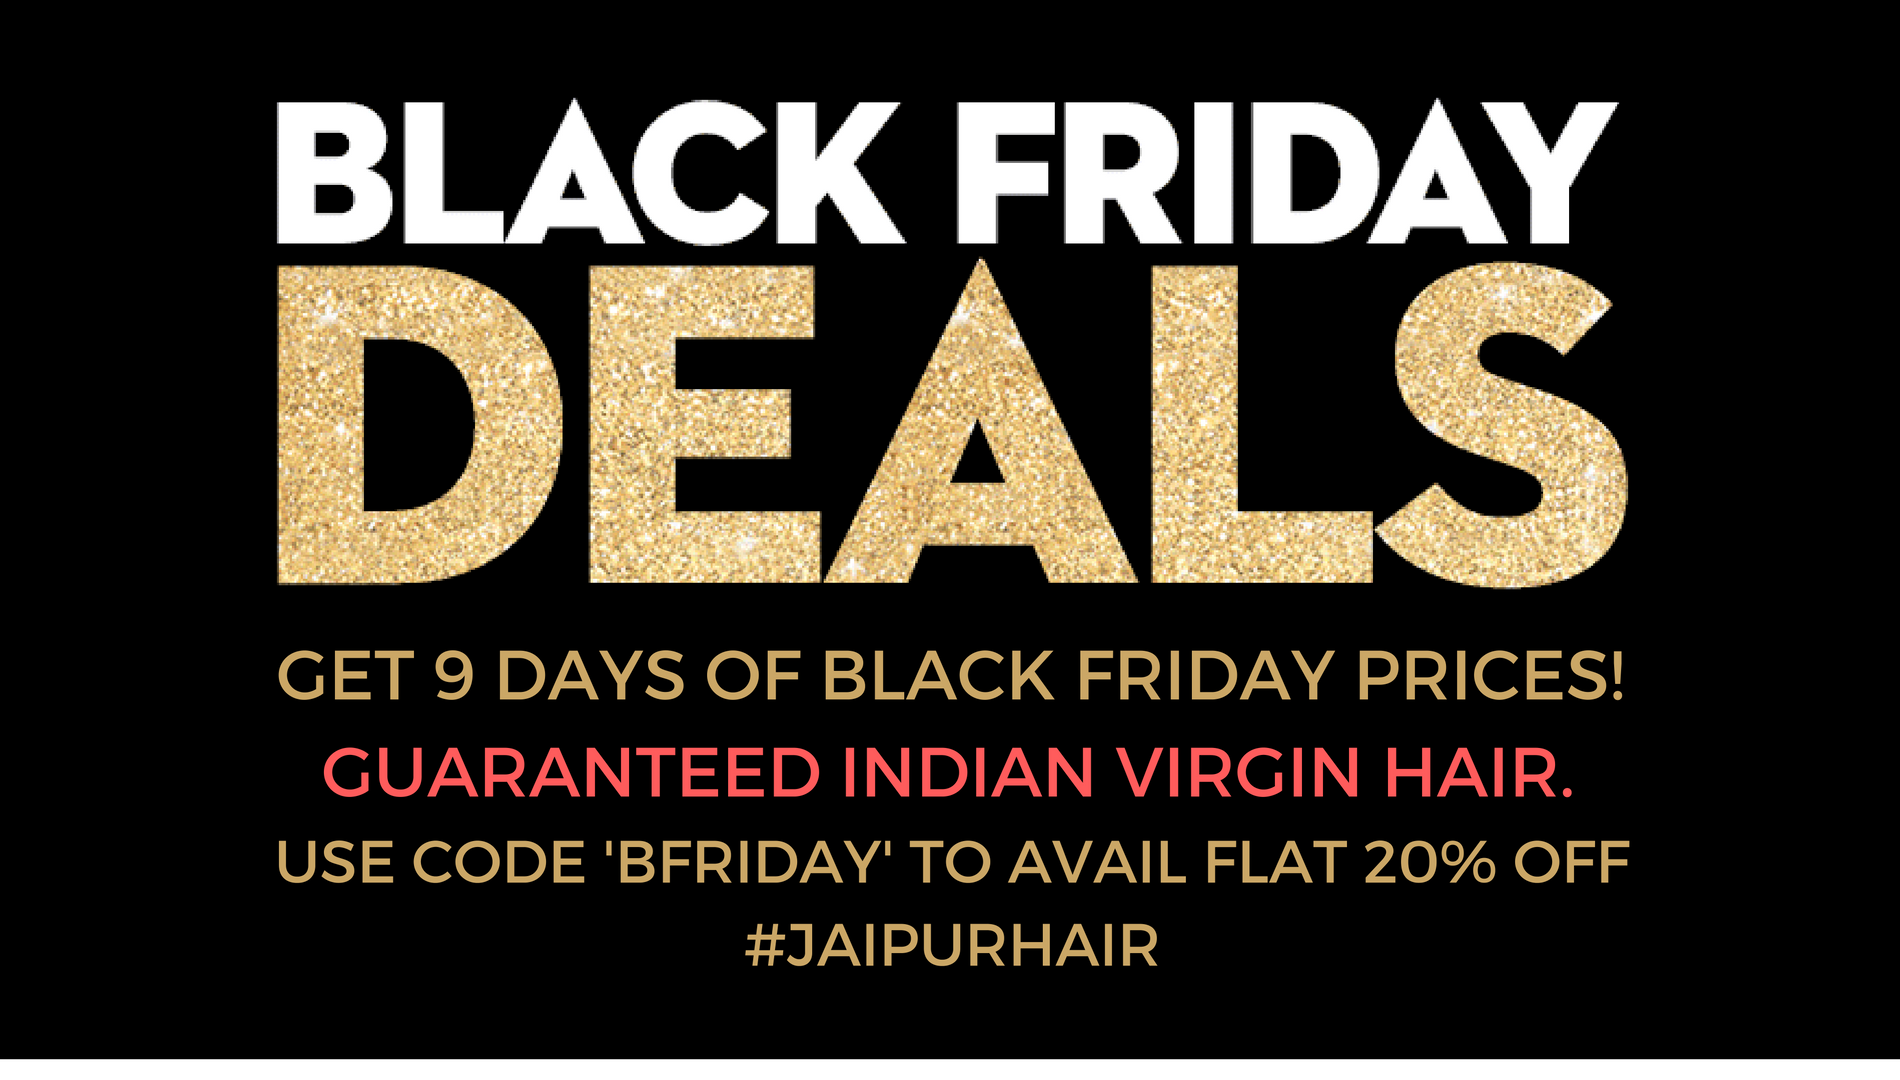 VIRGIN HAIR BLACK FRIDAY SALE 2016 CYBER MONDAY DEALS JAIPUR HAIR